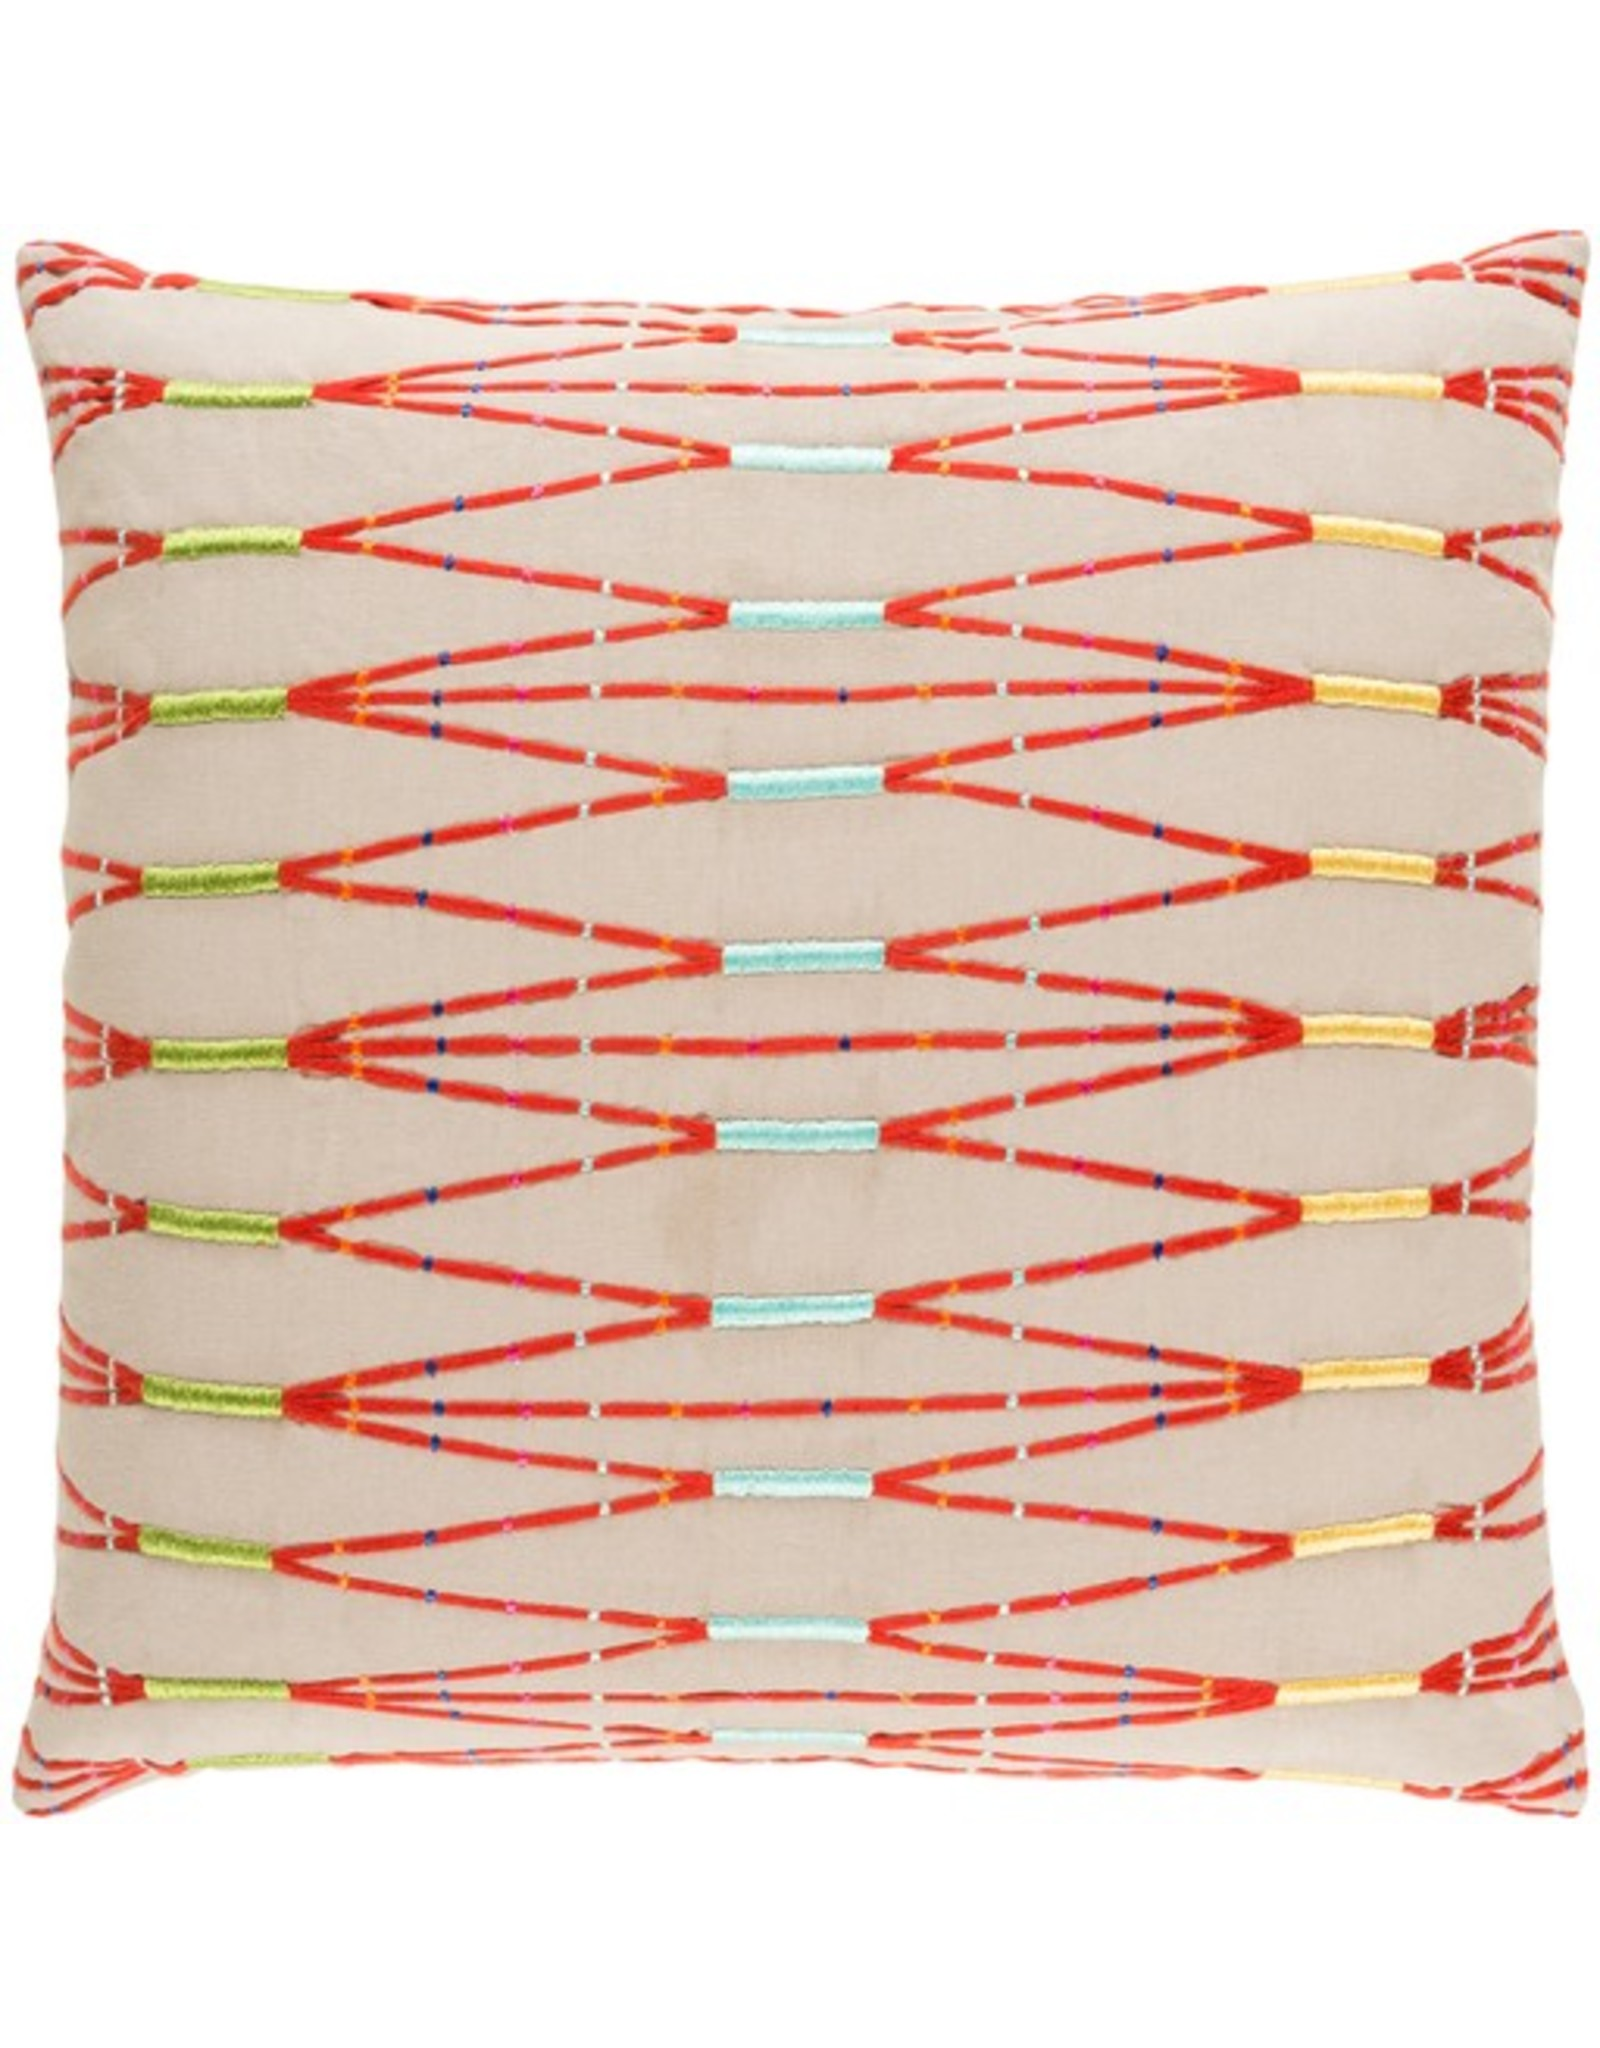 Surya Kikuyu Pillow 20X20